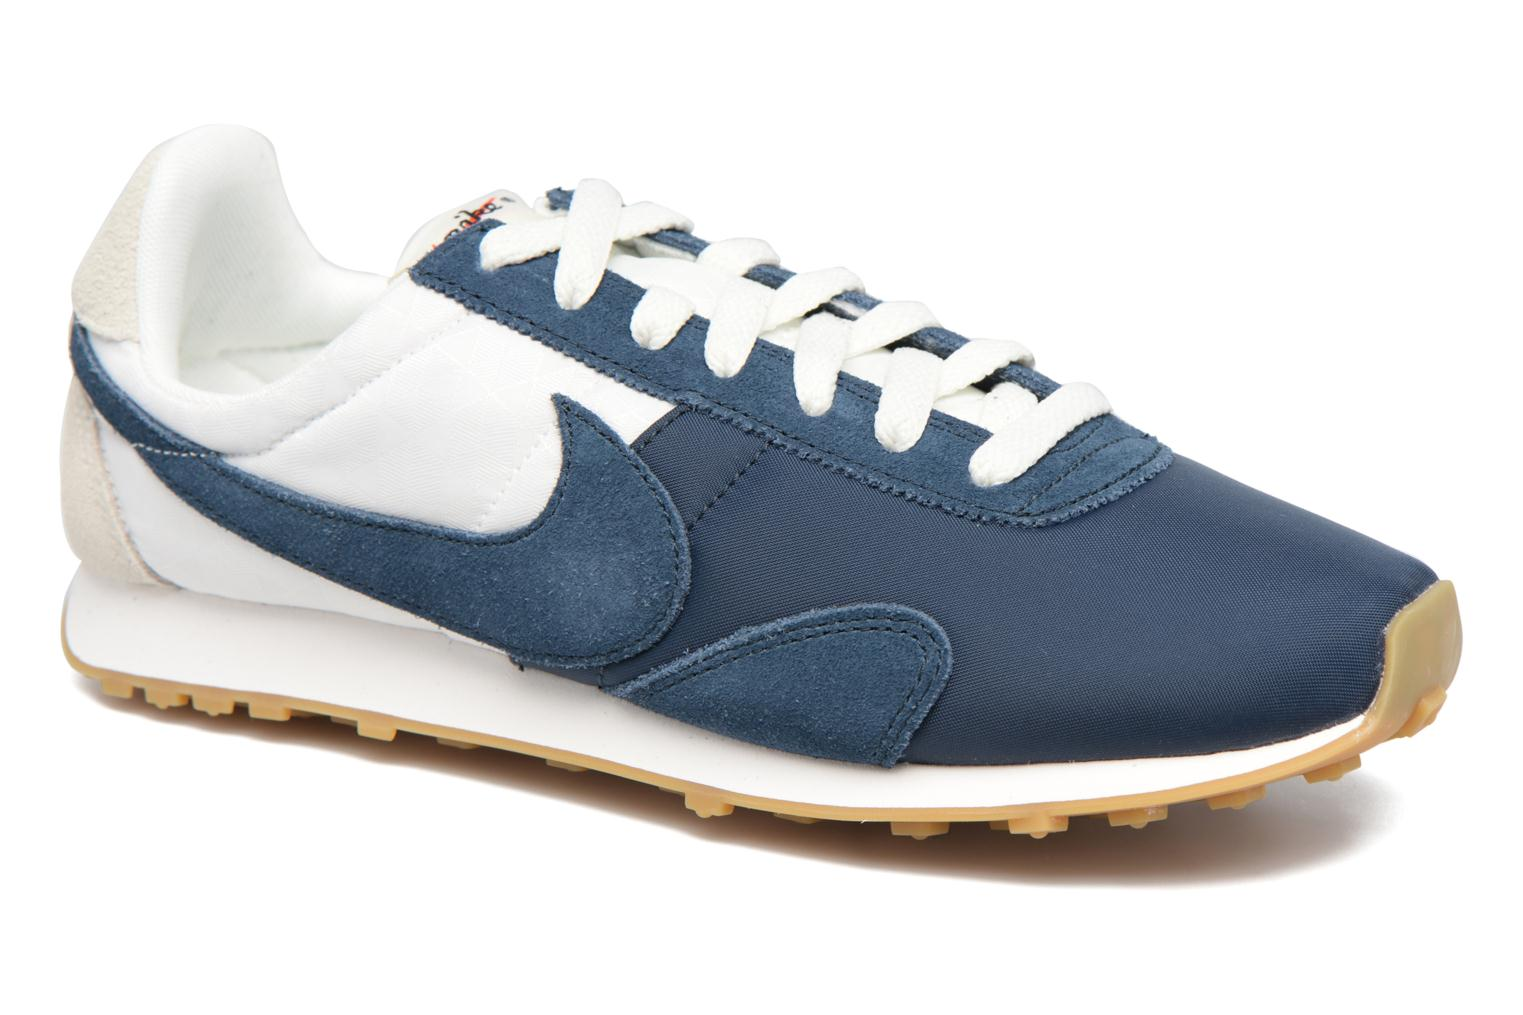 W Pre Montreal Racer Vntg Sail/Armory Navy-Gum Light Brown